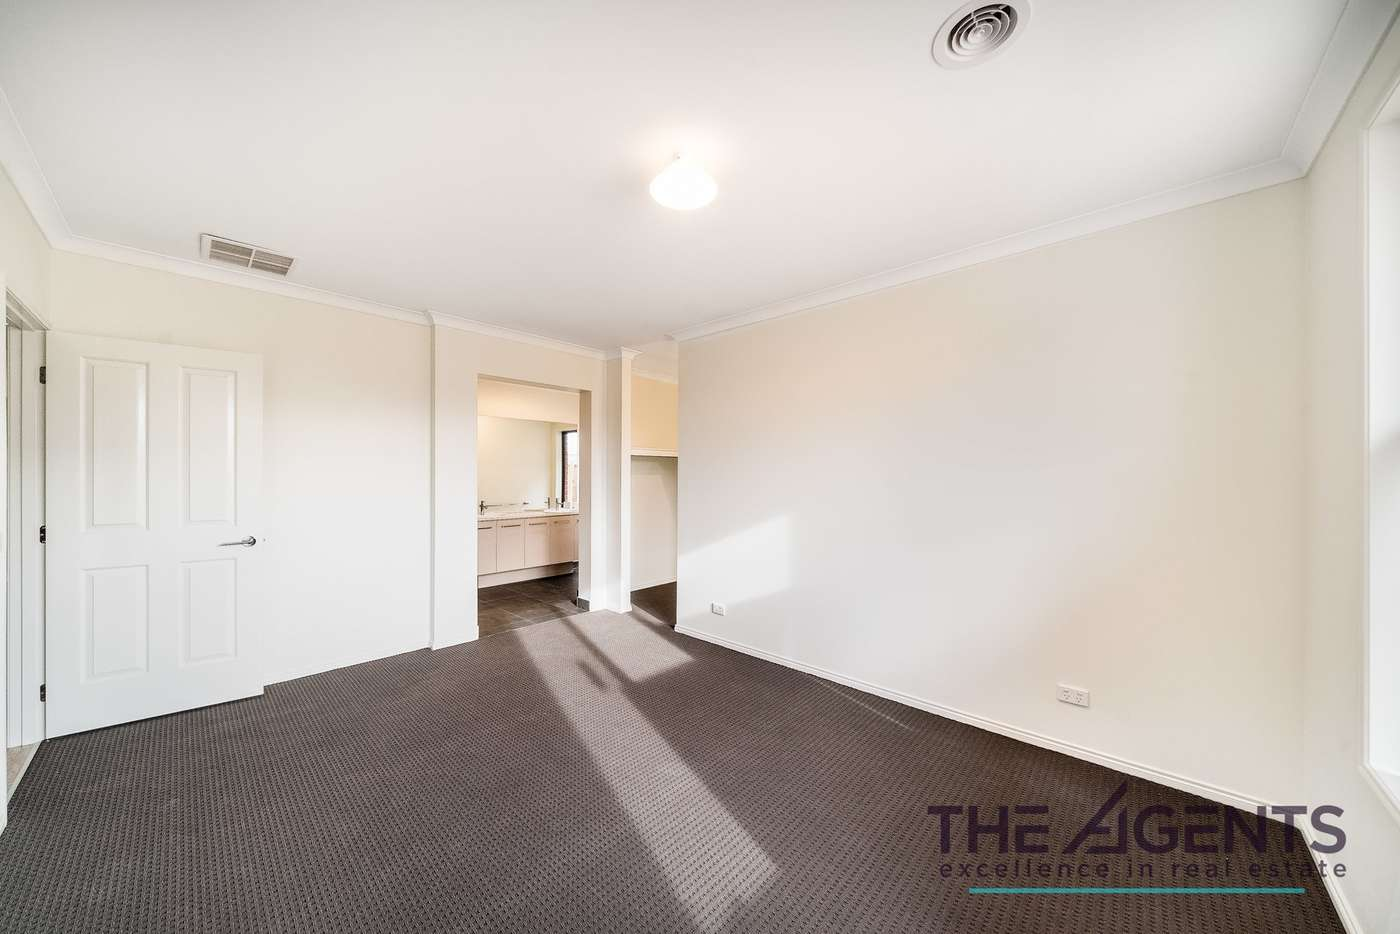 Sixth view of Homely house listing, 19 Greenwood Drive, Aintree VIC 3336